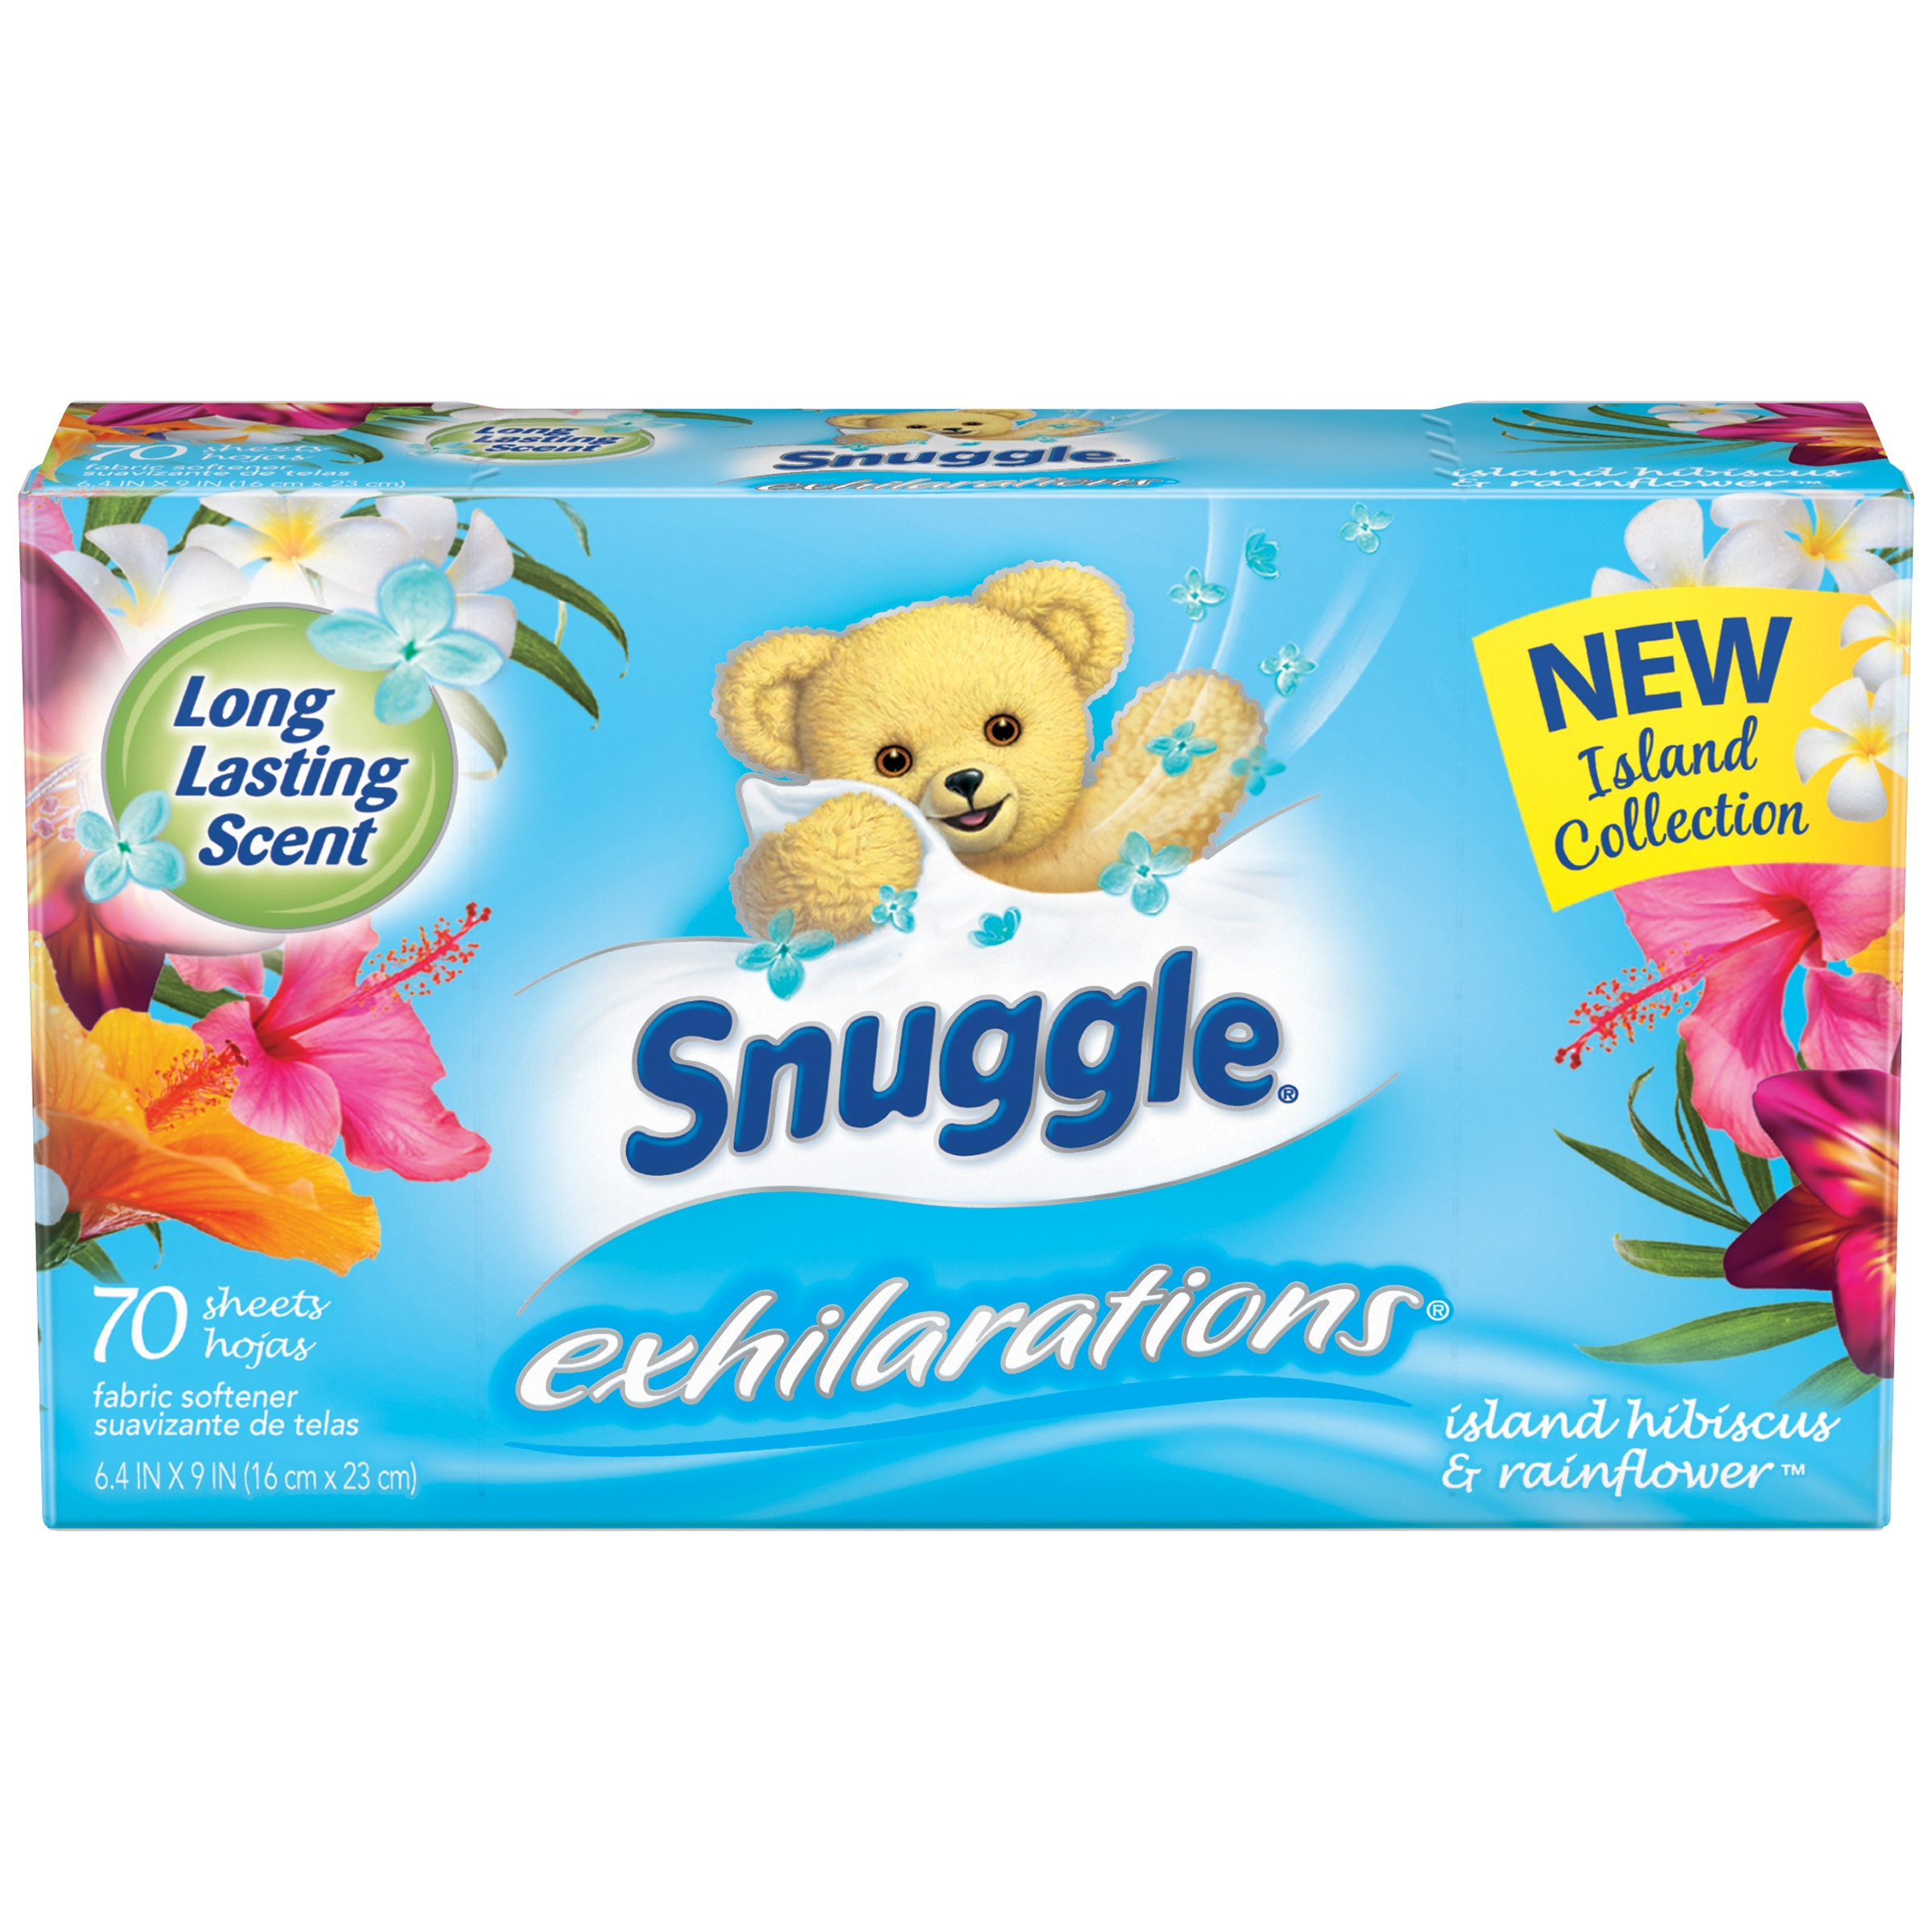 Snuggle Exhilarations Island Hibiscus & Rainflower Fabric Softener Sheets, 70 count